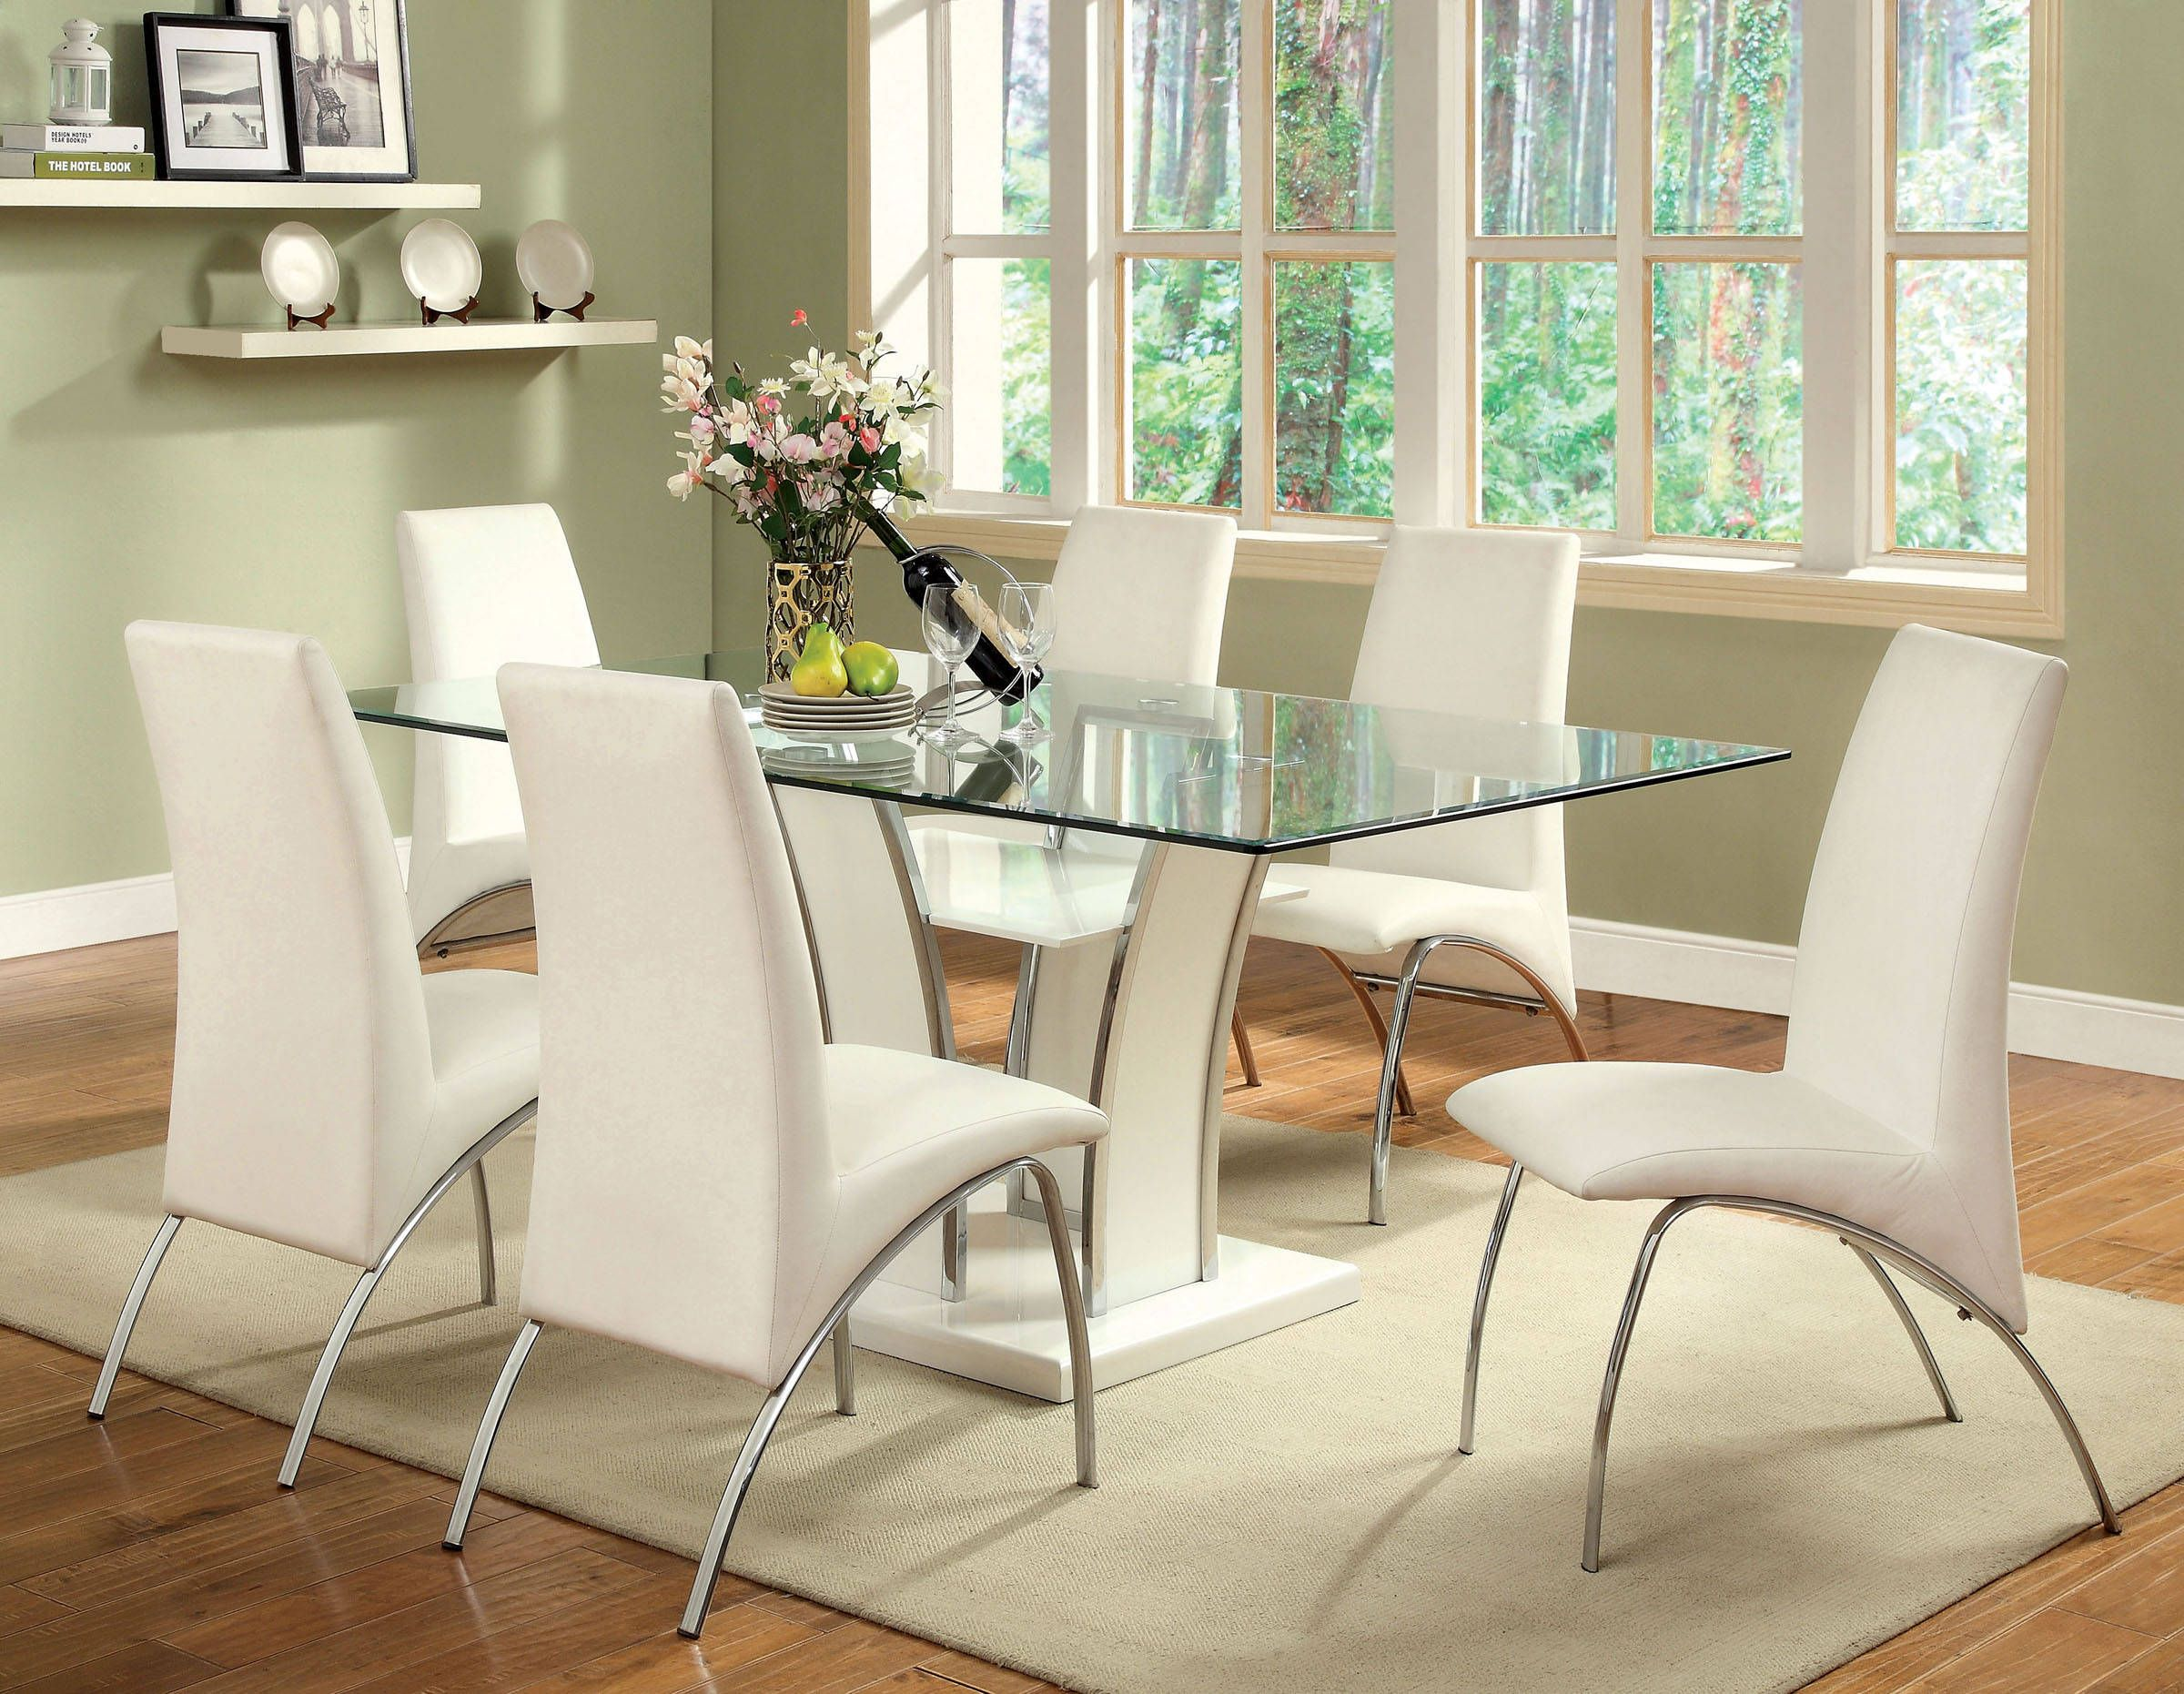 Furniture of America Glenview White Glass Top Dining Table